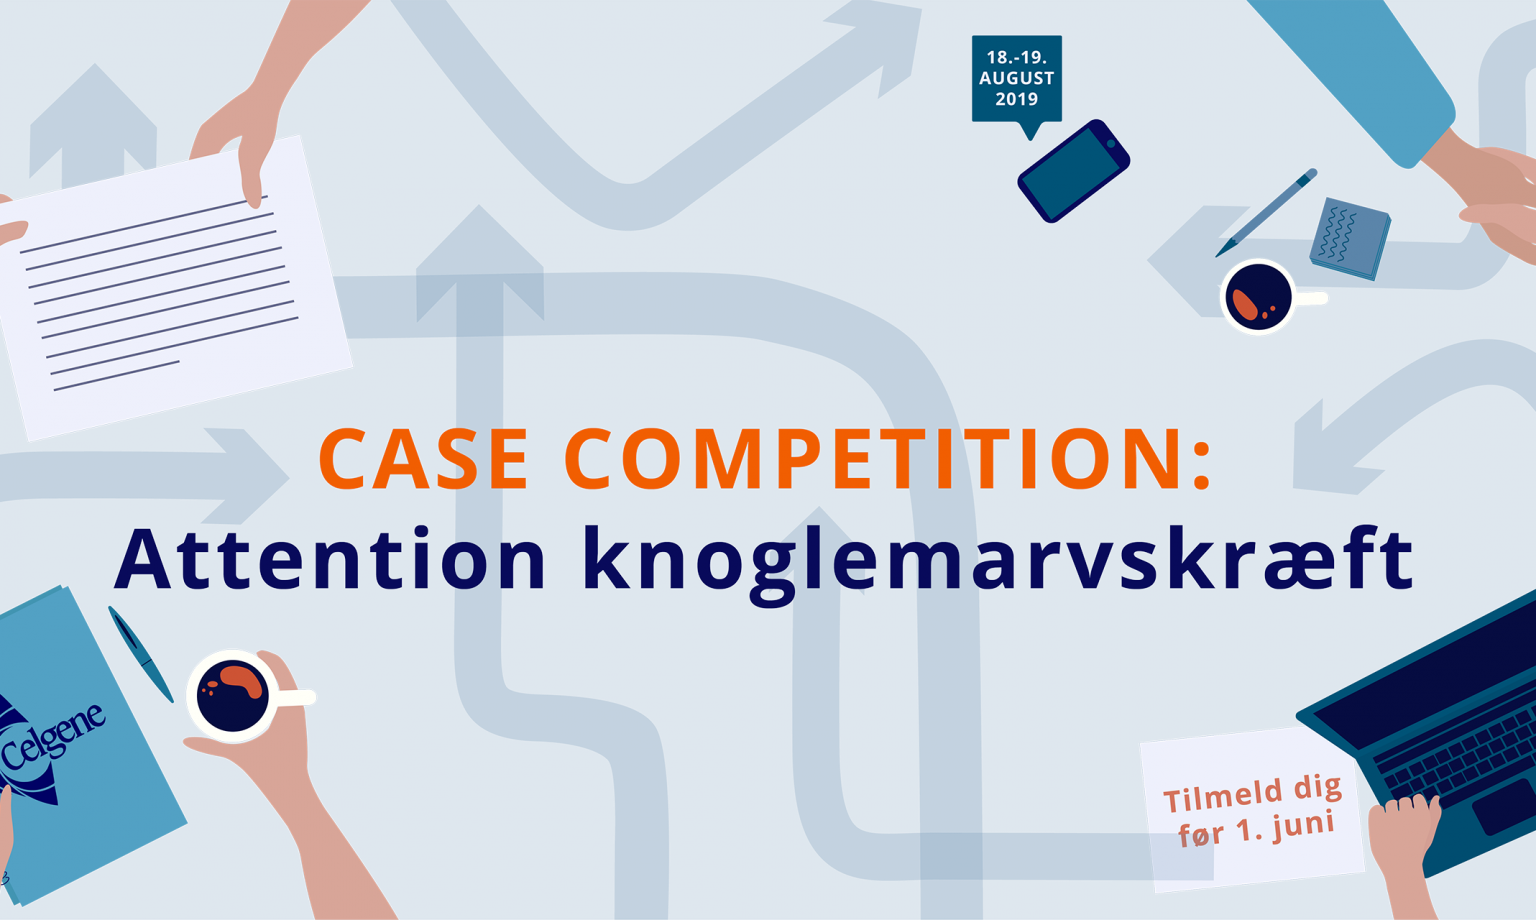 Case Competition: Attention knoglemarvskræft